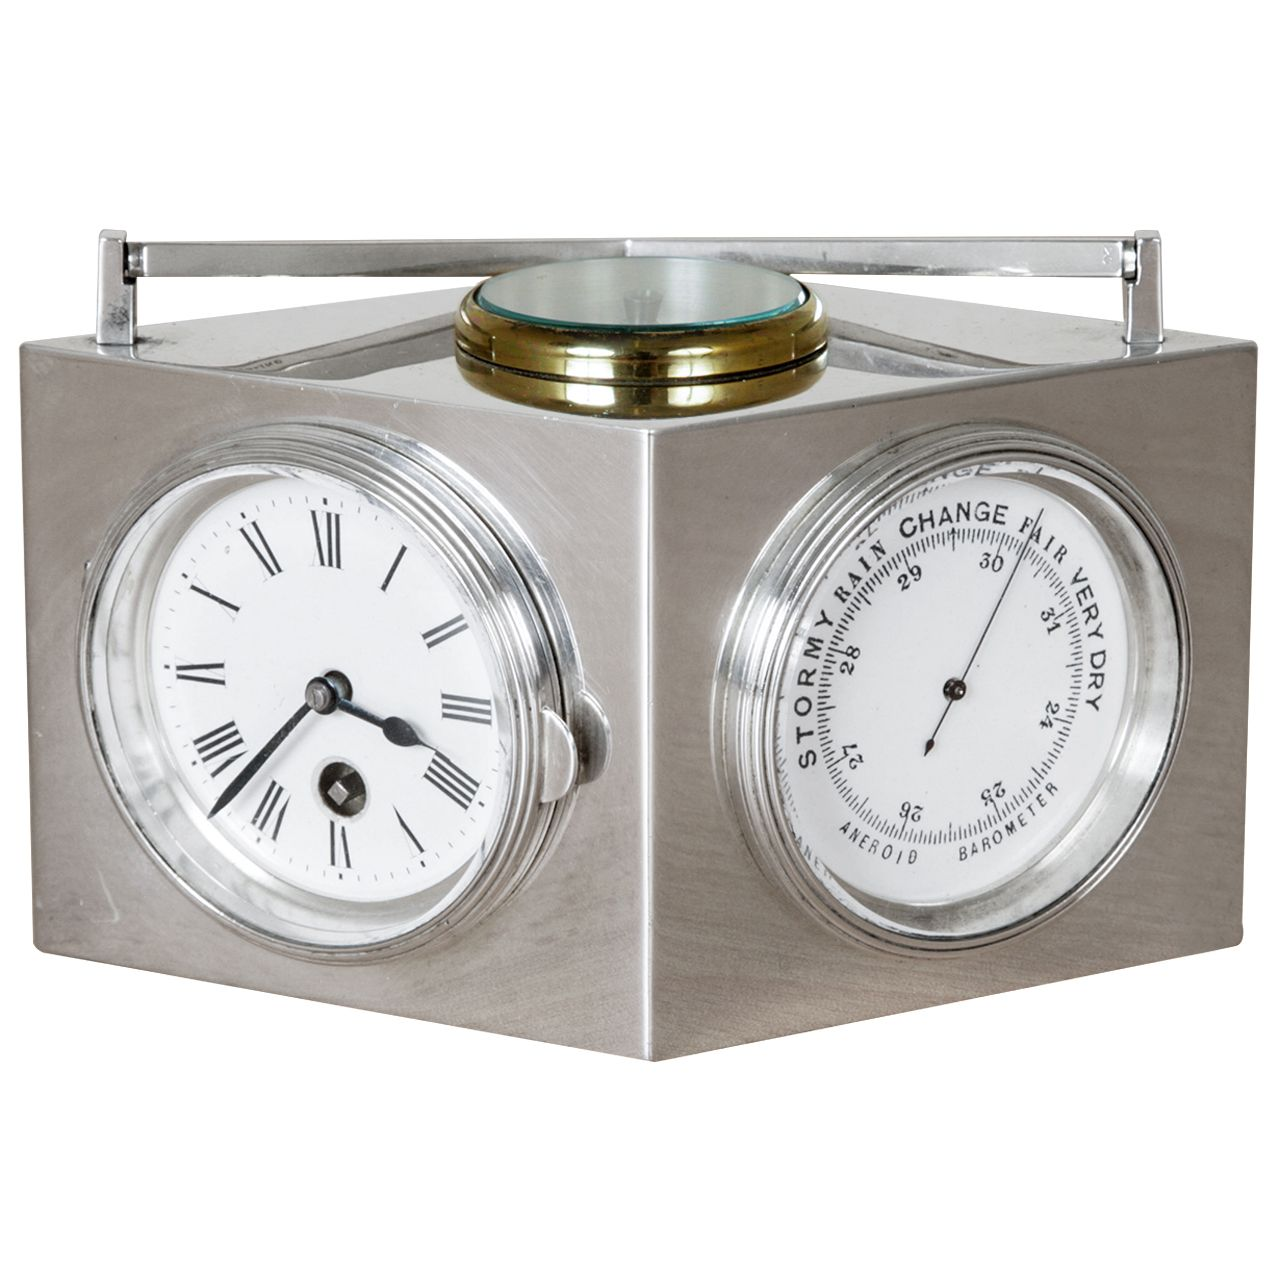 Sterling Silver Combination Clock | From a unique collection of antique and modern sterling silver at https://www.1stdibs.com/furniture/dining-entertaining/sterling-silver/